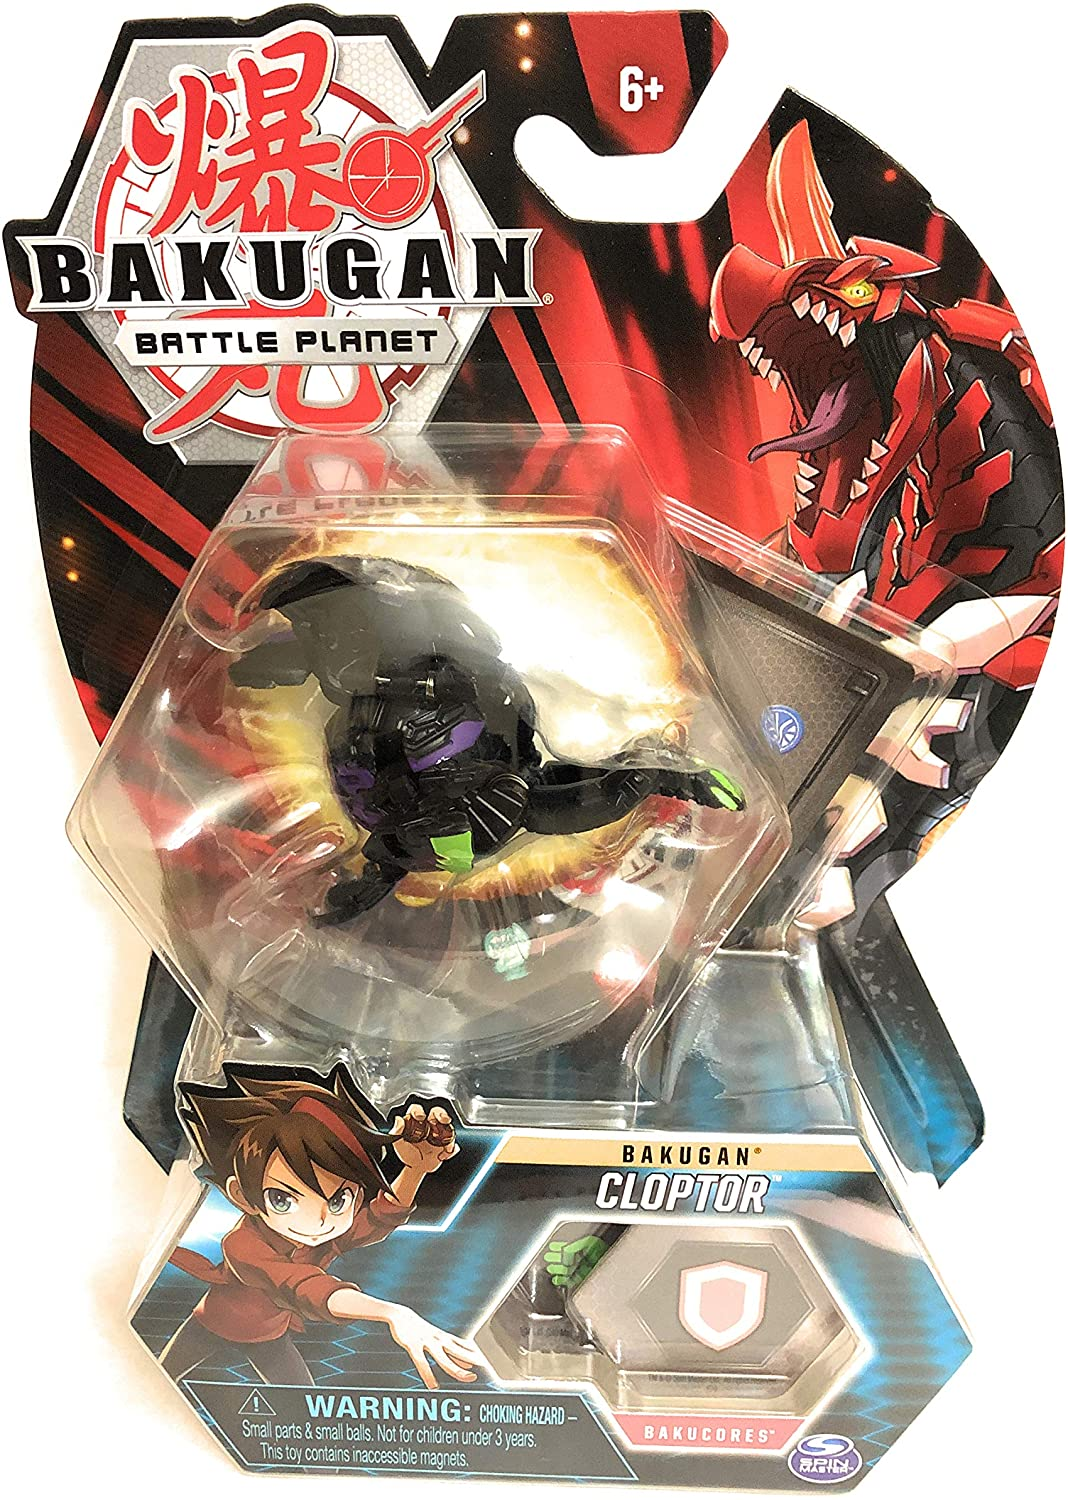 "Bakugan, Darkus Cloptor, 2"" Tall Collectible Transforming Creature, for Ages 6 & Up"